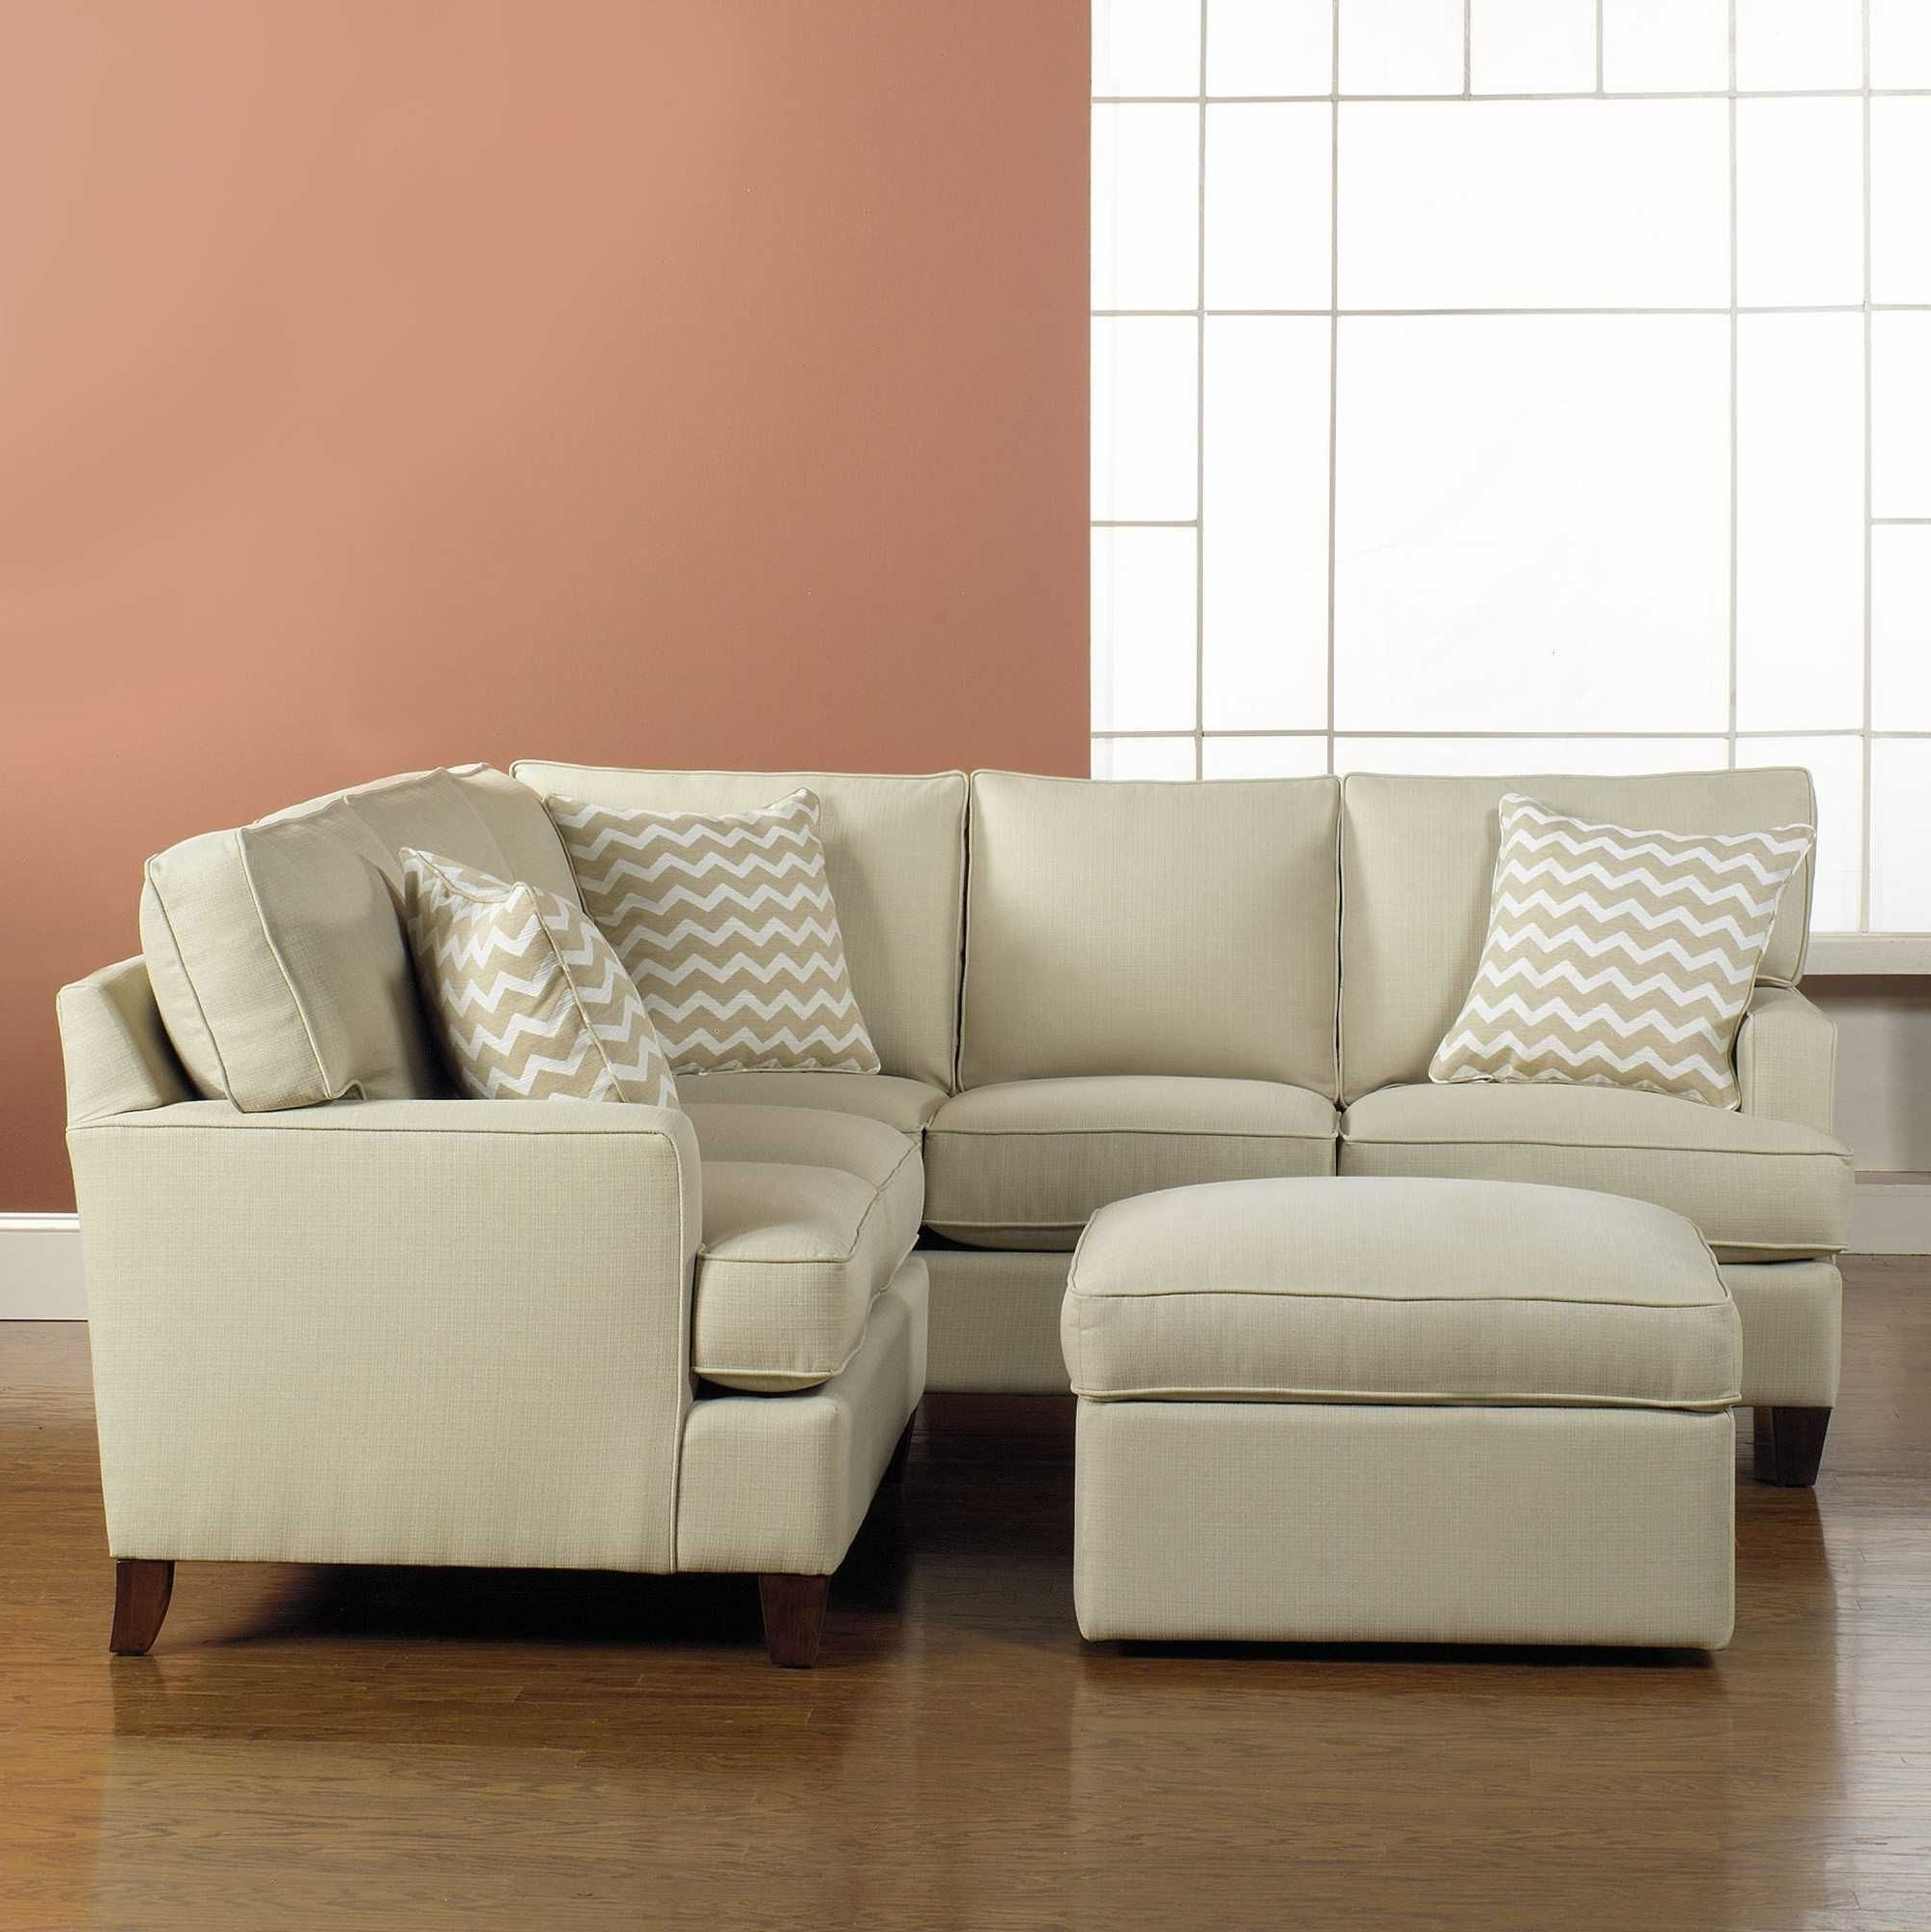 Sectional Sofas With Recliners For Small Spaces Inside Most Up To Date Sofa : Leather Sectional Sofas For Small Spaces Recliner Loveseat (View 13 of 20)